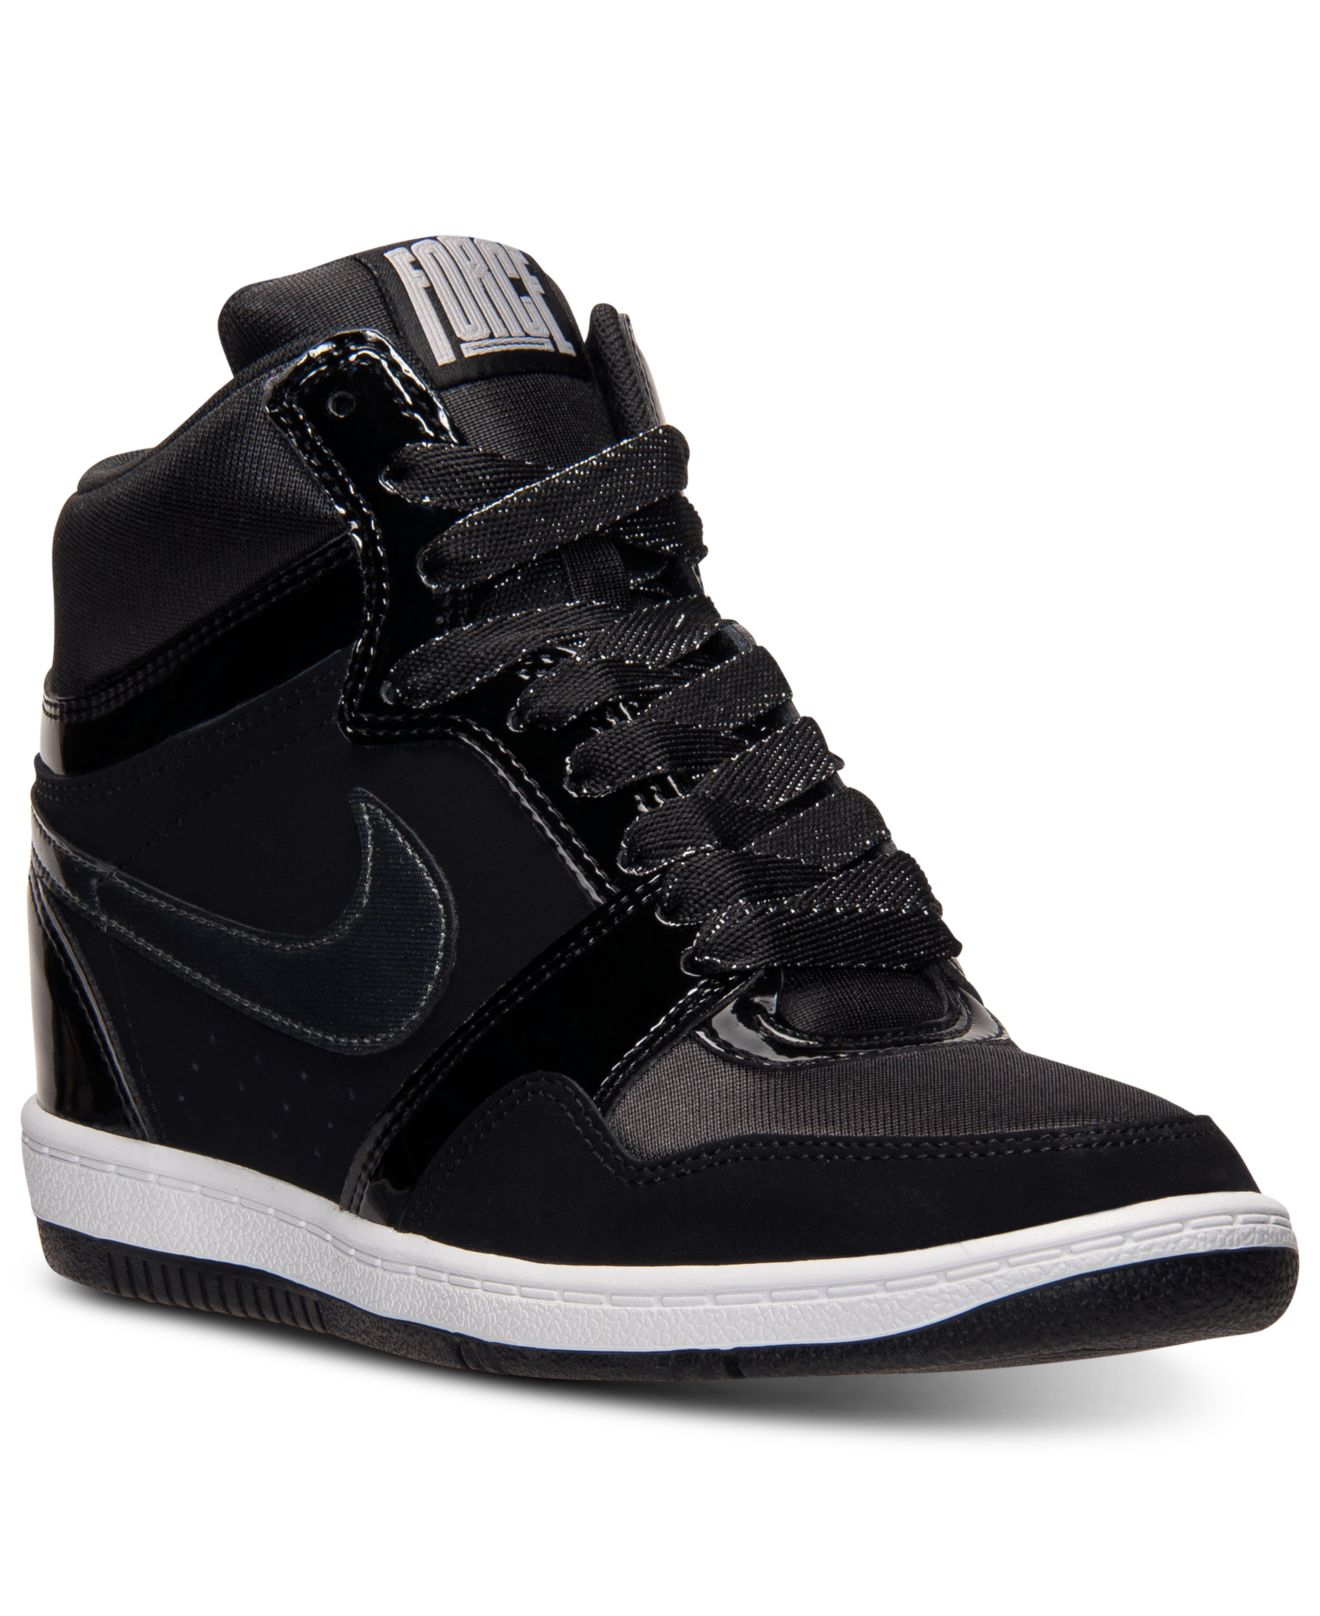 lyst nike women 39 s force sky high casual sneakers from finish line in black. Black Bedroom Furniture Sets. Home Design Ideas